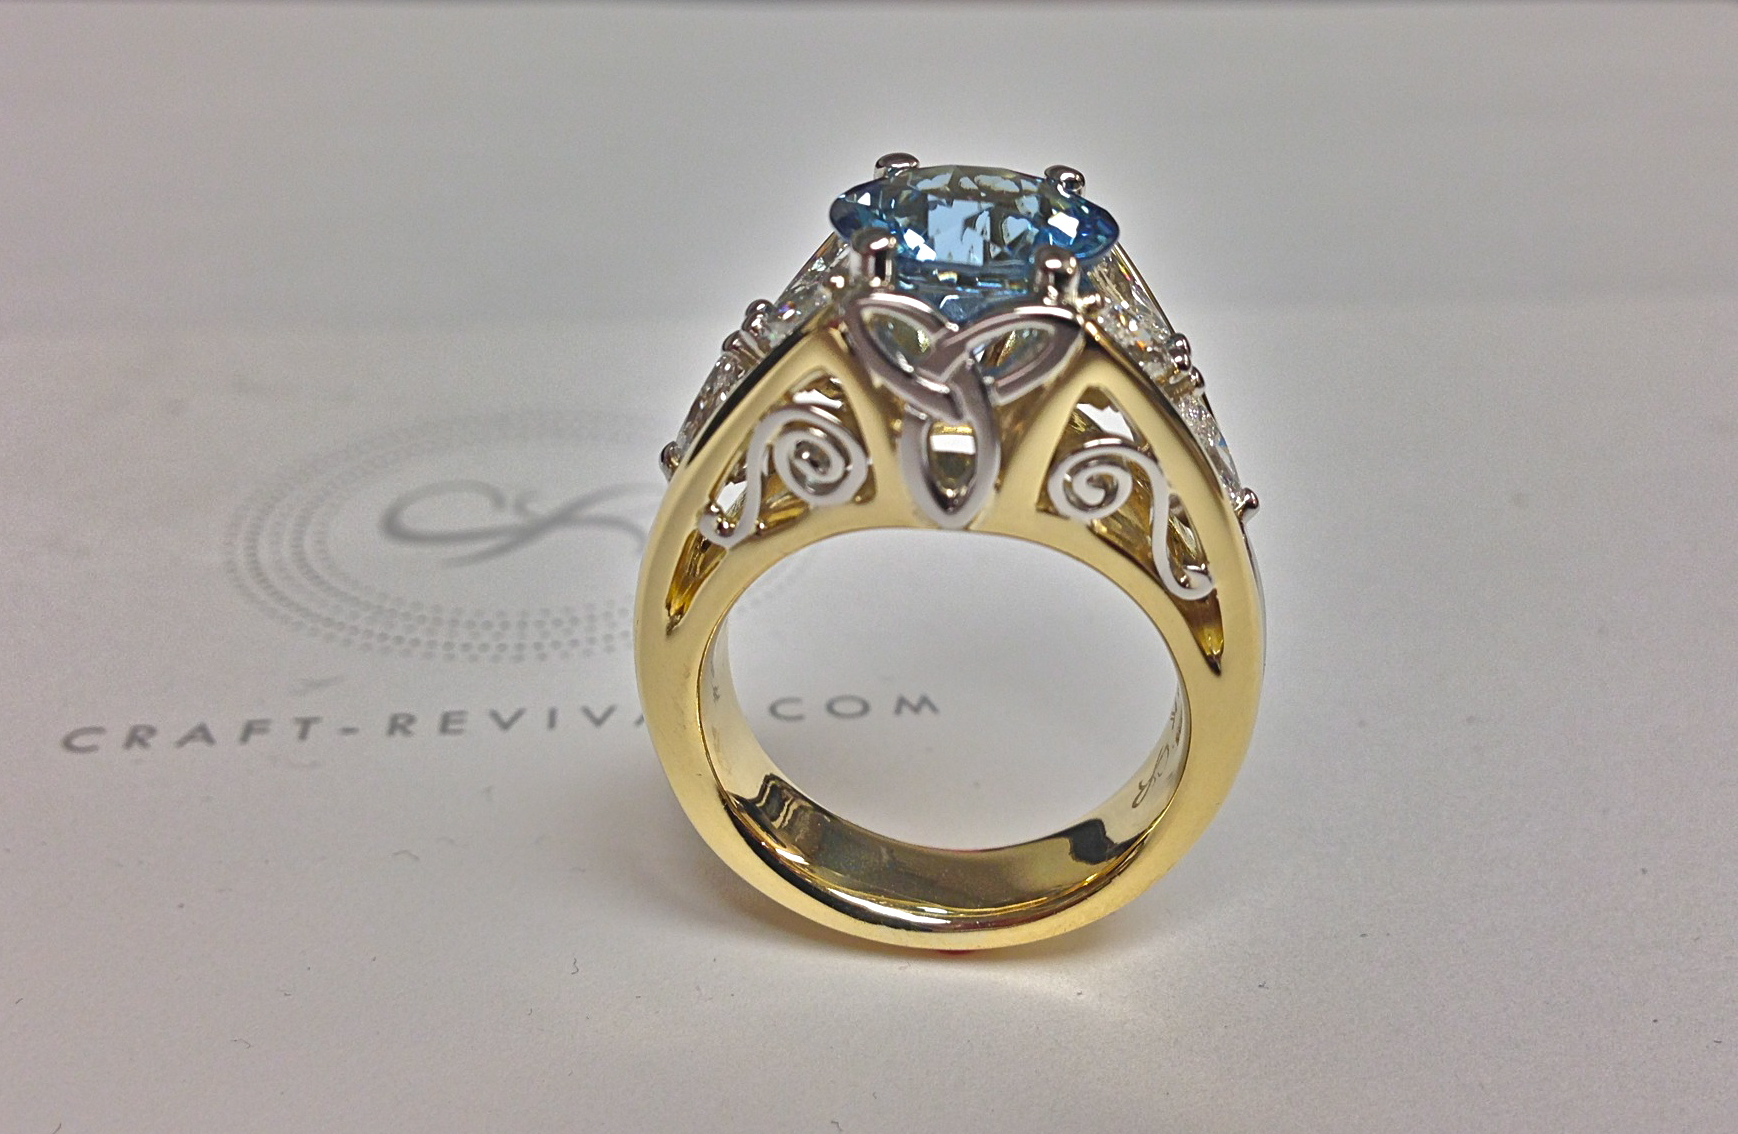 Craft-Revival Jewelers,  engagement ring, diamond engagement ring, diamond ring, modern ring, unique ring, unique engagement ring, aquamarine ring, irish ring, yellow gold ring, celtic ring